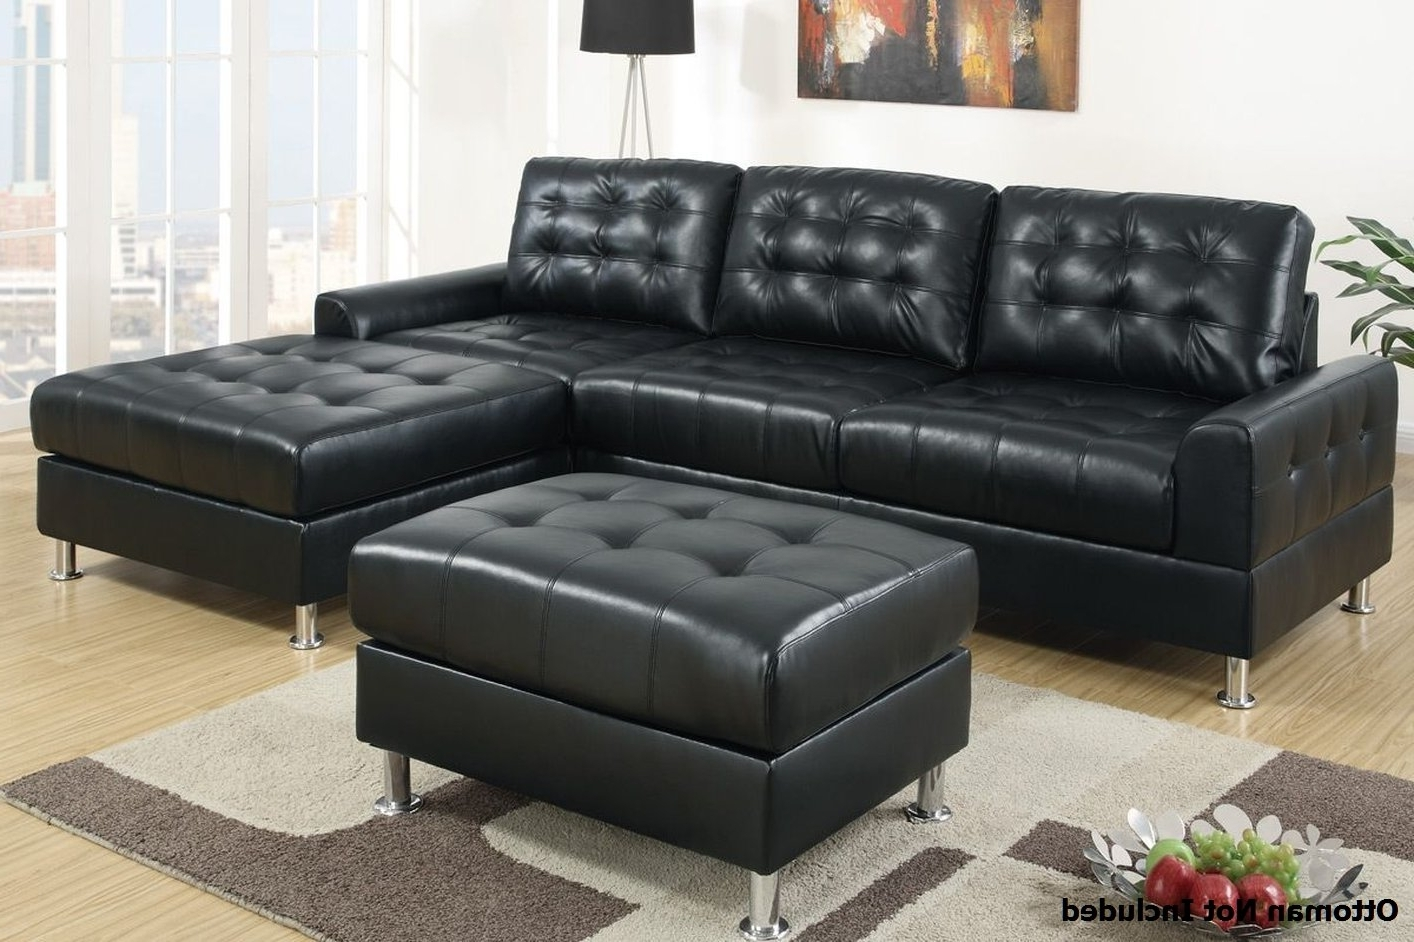 Sectional Sofa Design: Comfrotable Black Leather Sectional Sof Within Well Known Black Leather Sectionals With Ottoman (View 5 of 15)